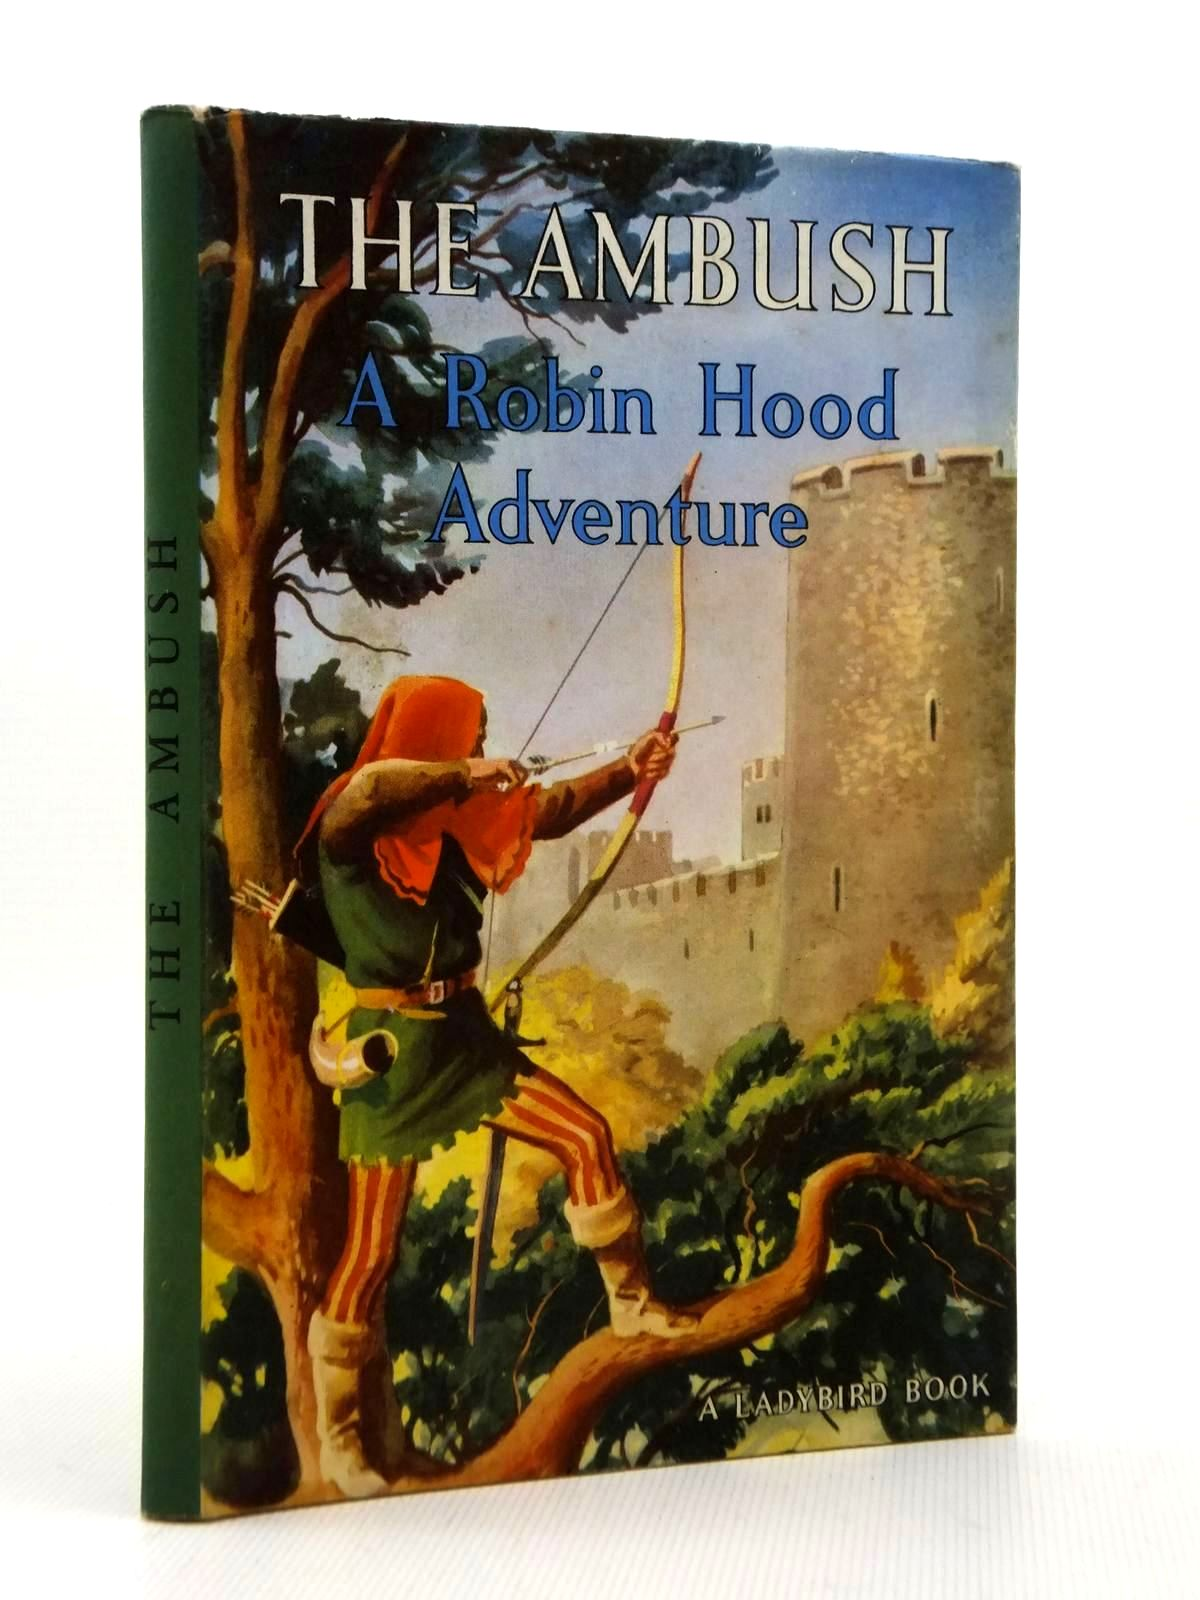 Photo of THE AMBUSH written by Kester, Max illustrated by Kenney, John published by Wills & Hepworth Ltd. (STOCK CODE: 1316852)  for sale by Stella & Rose's Books